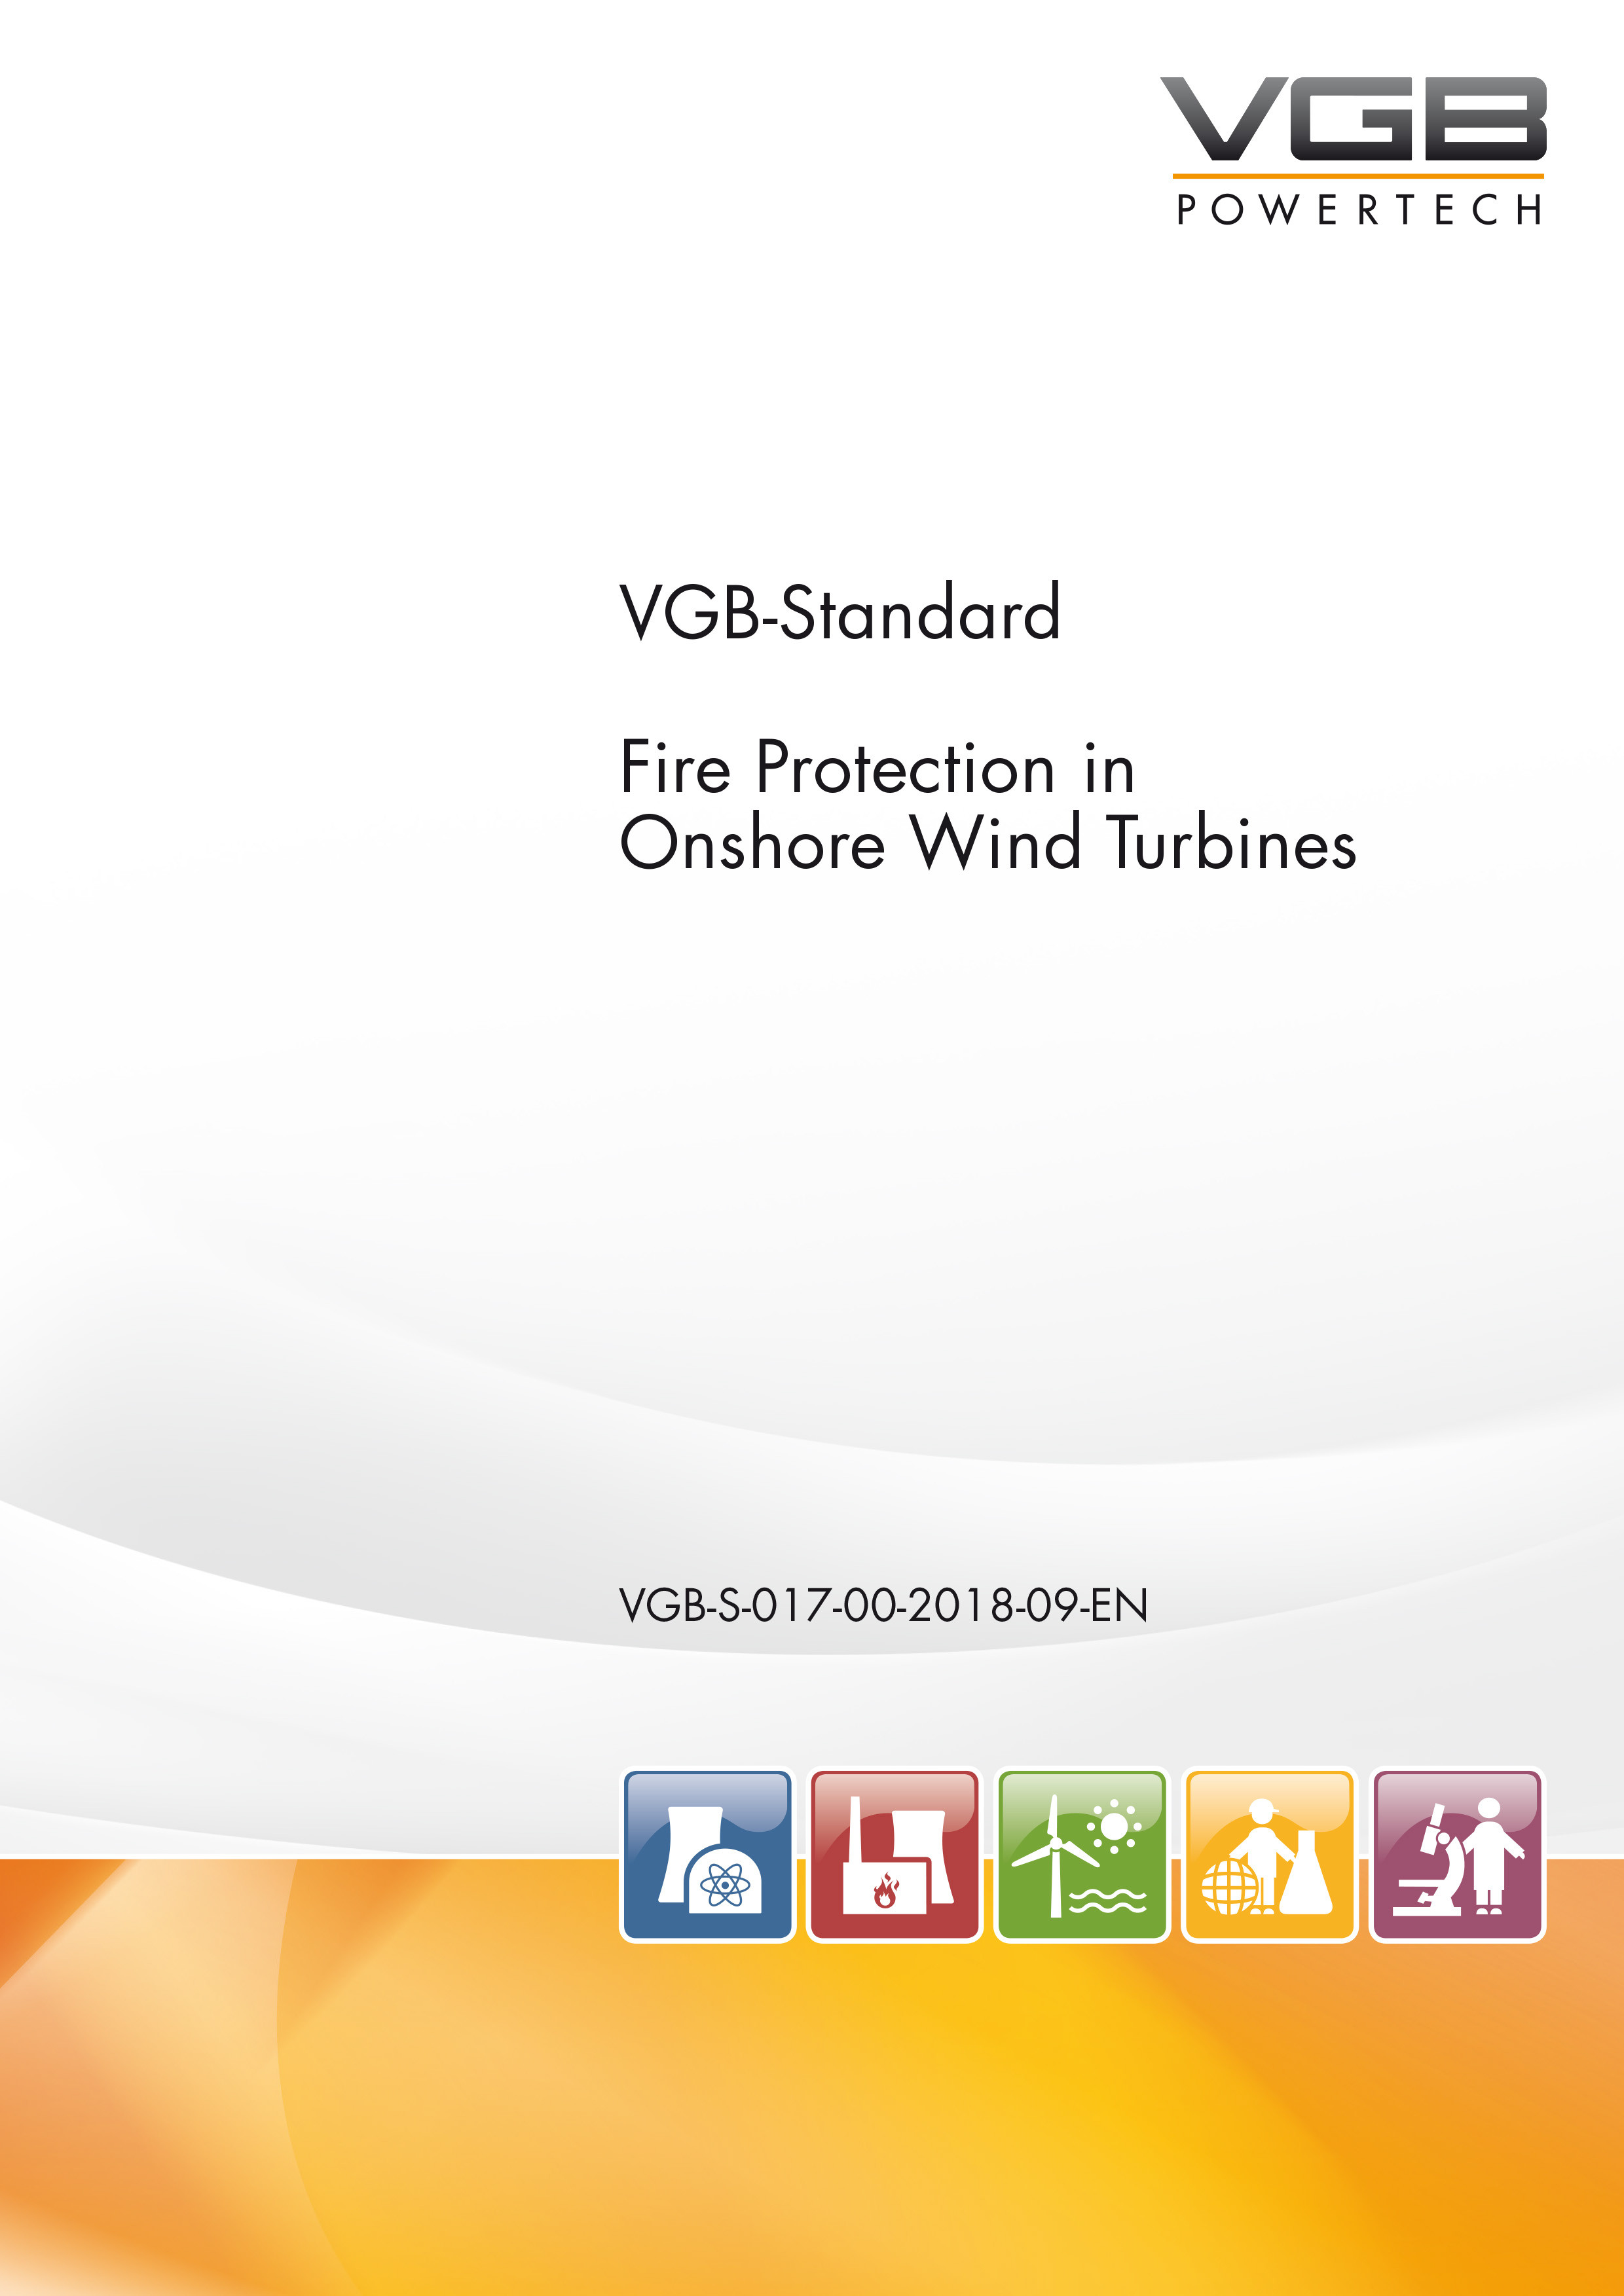 Fire Protection in Onshore Wind Turbines